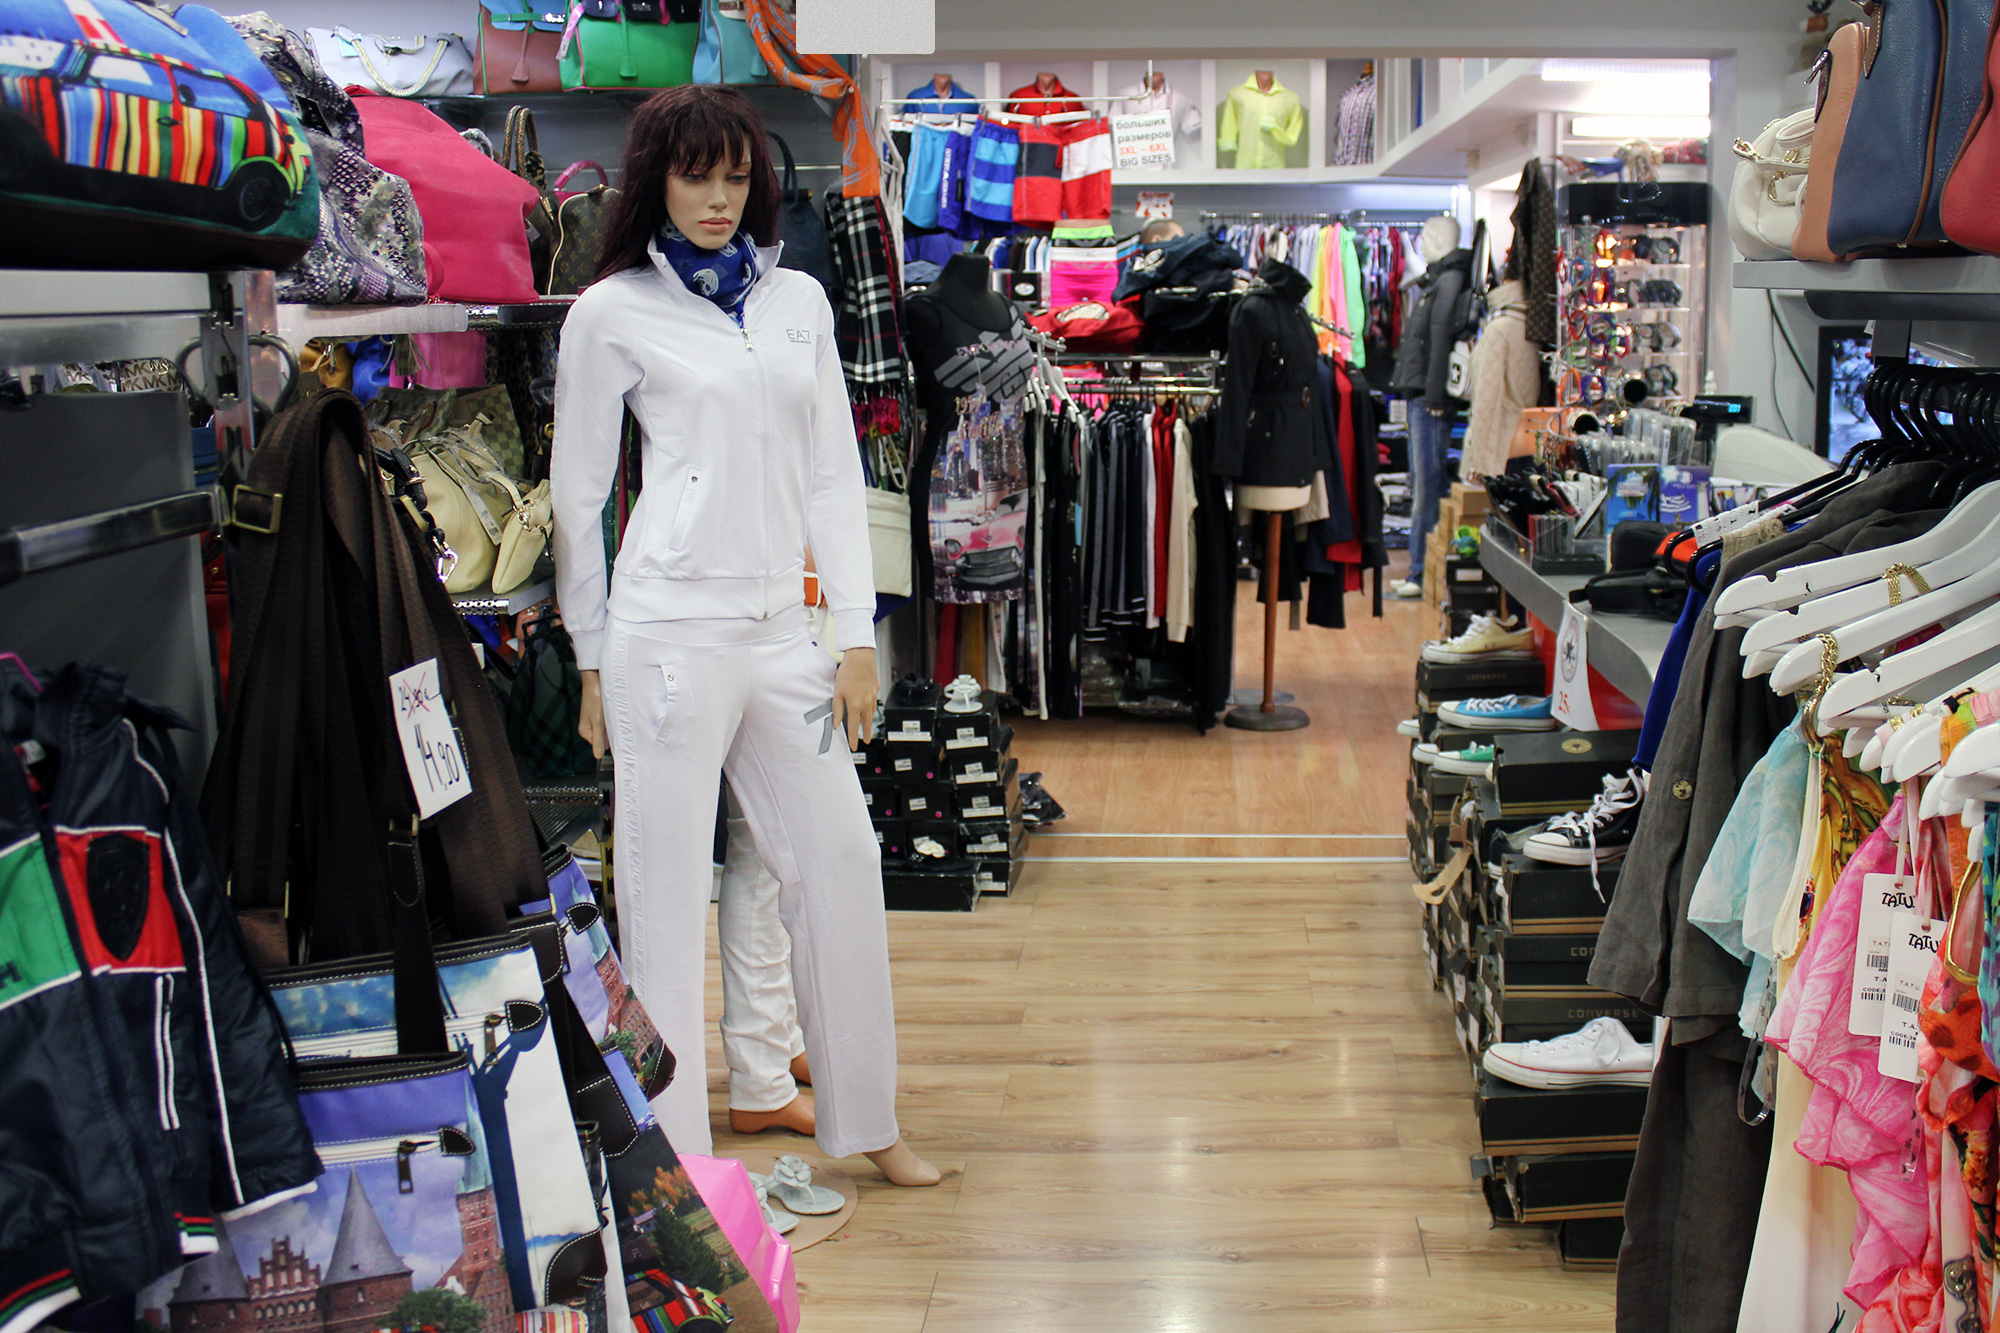 Catalogue clothing stores